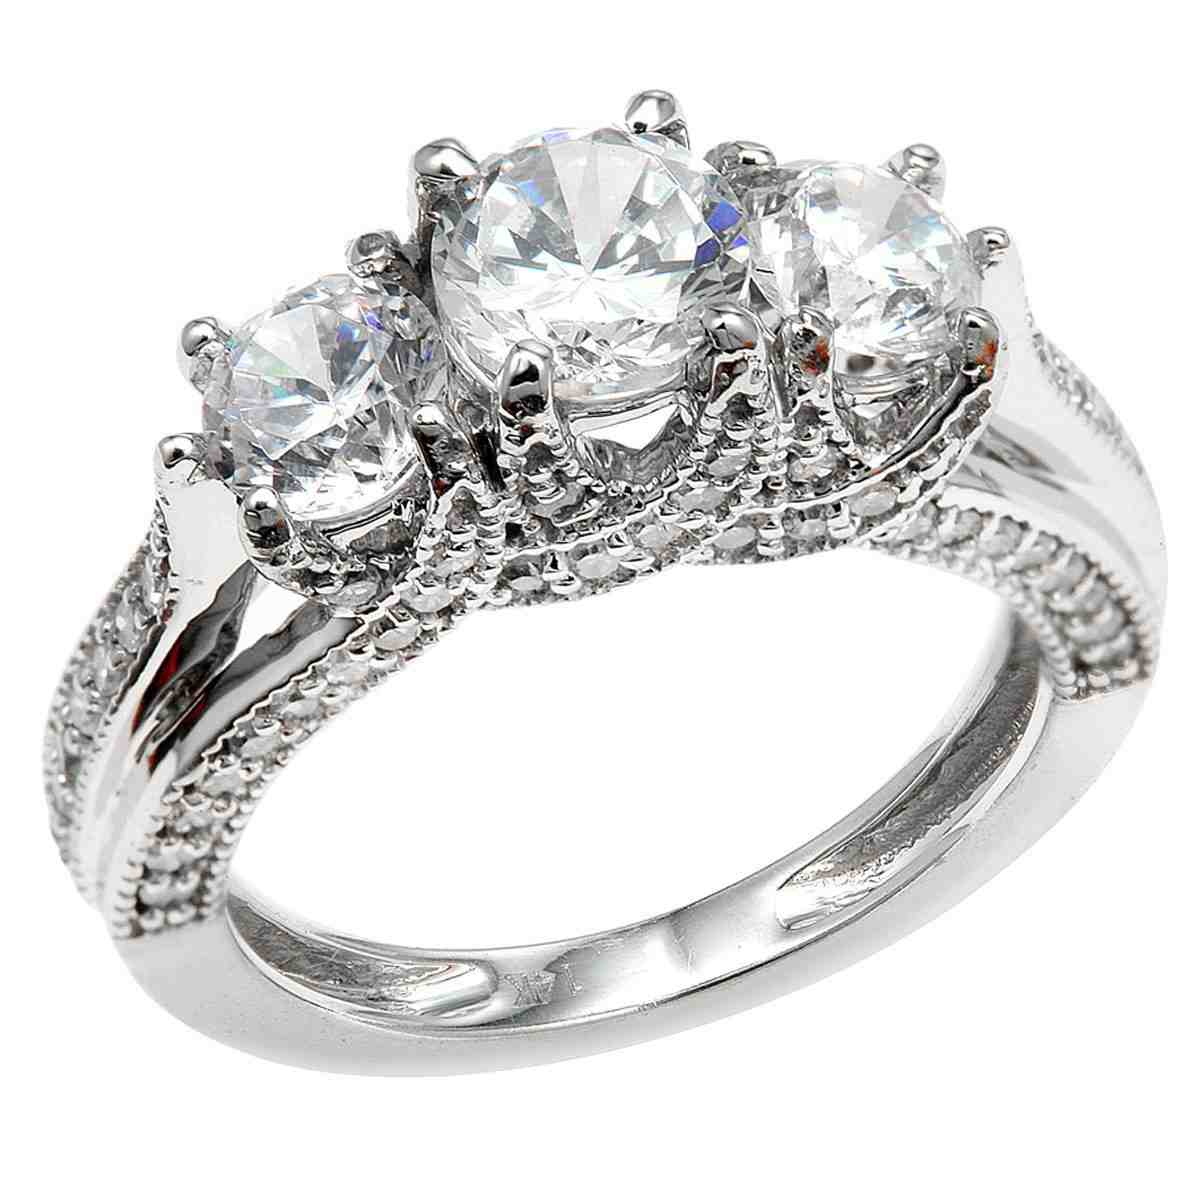 Three Stone Engagement Rings  Wedding And Bridal Inspiration. Million Dollar Engagement Rings. Mexican Traditional Engagement Rings. Channel Set Diamond Engagement Rings. Boy Wedding Rings. Wedding Website Engagement Rings. Alex Garza Engagement Rings. Indie Rings. Calla Lily Wedding Rings